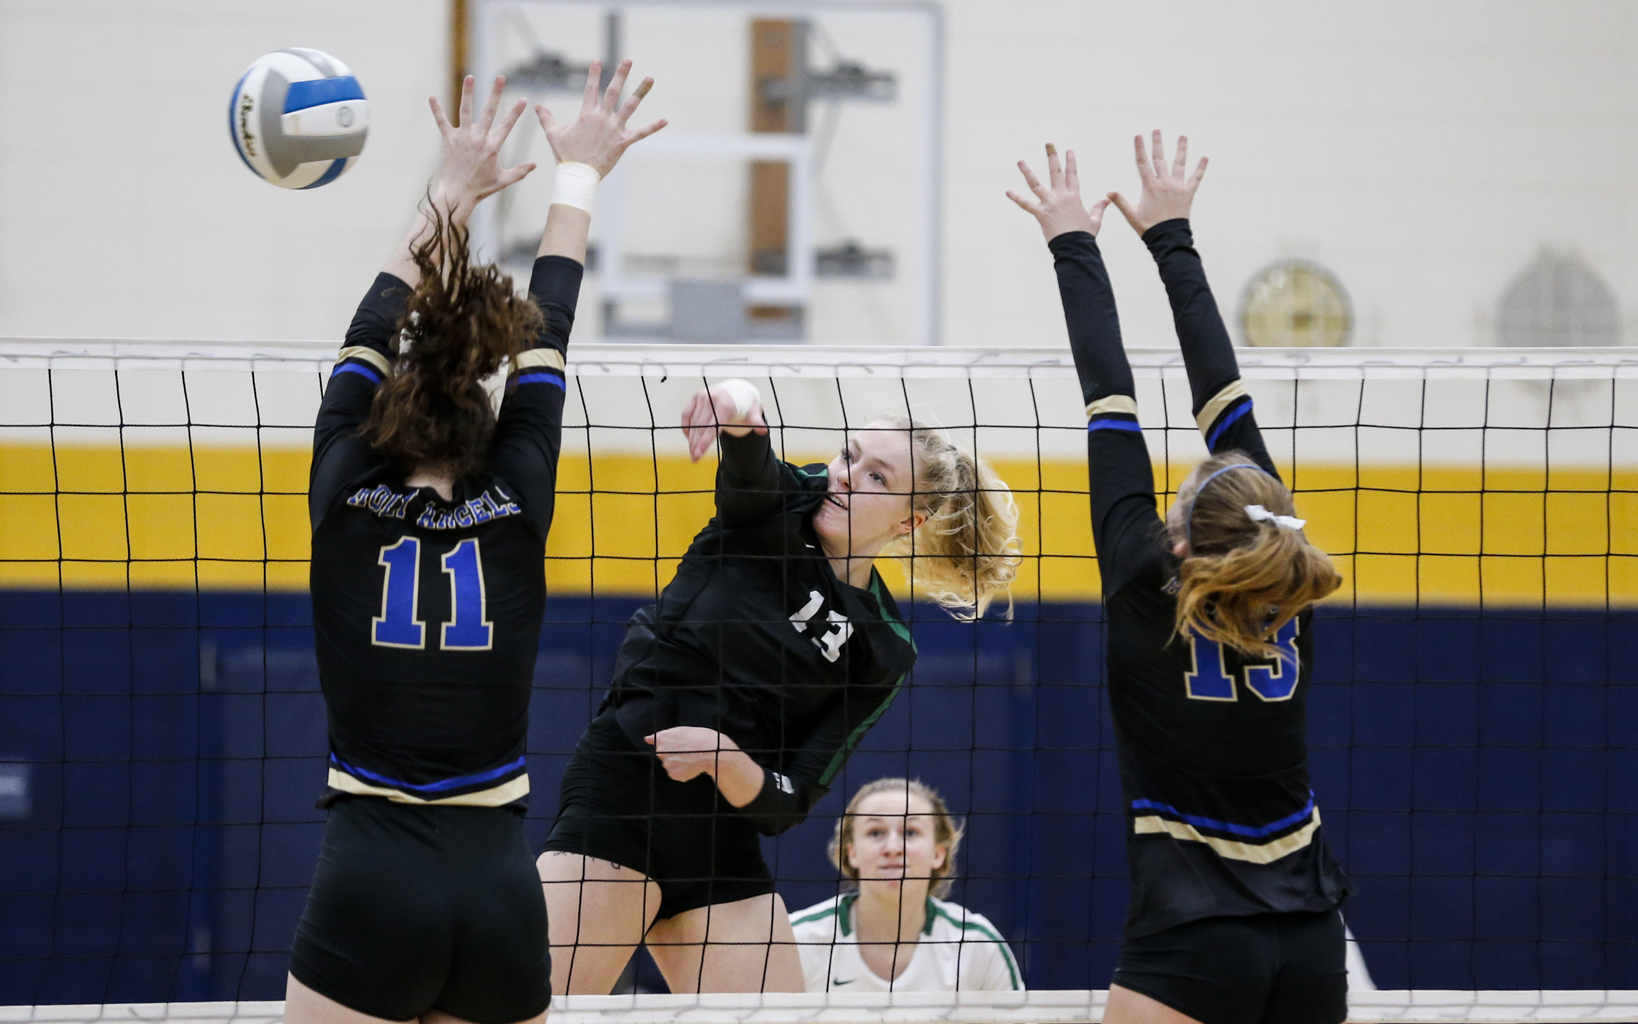 Concordia Academy's Kira Fallert (13) goes up for one of her 19 kills against Holy Angels Saturday afternoon. The Beacons advanced to the Class 2A state tournament with a three sets to none victory over the Stars. Photo by Jeff Lawler, SportsEngine